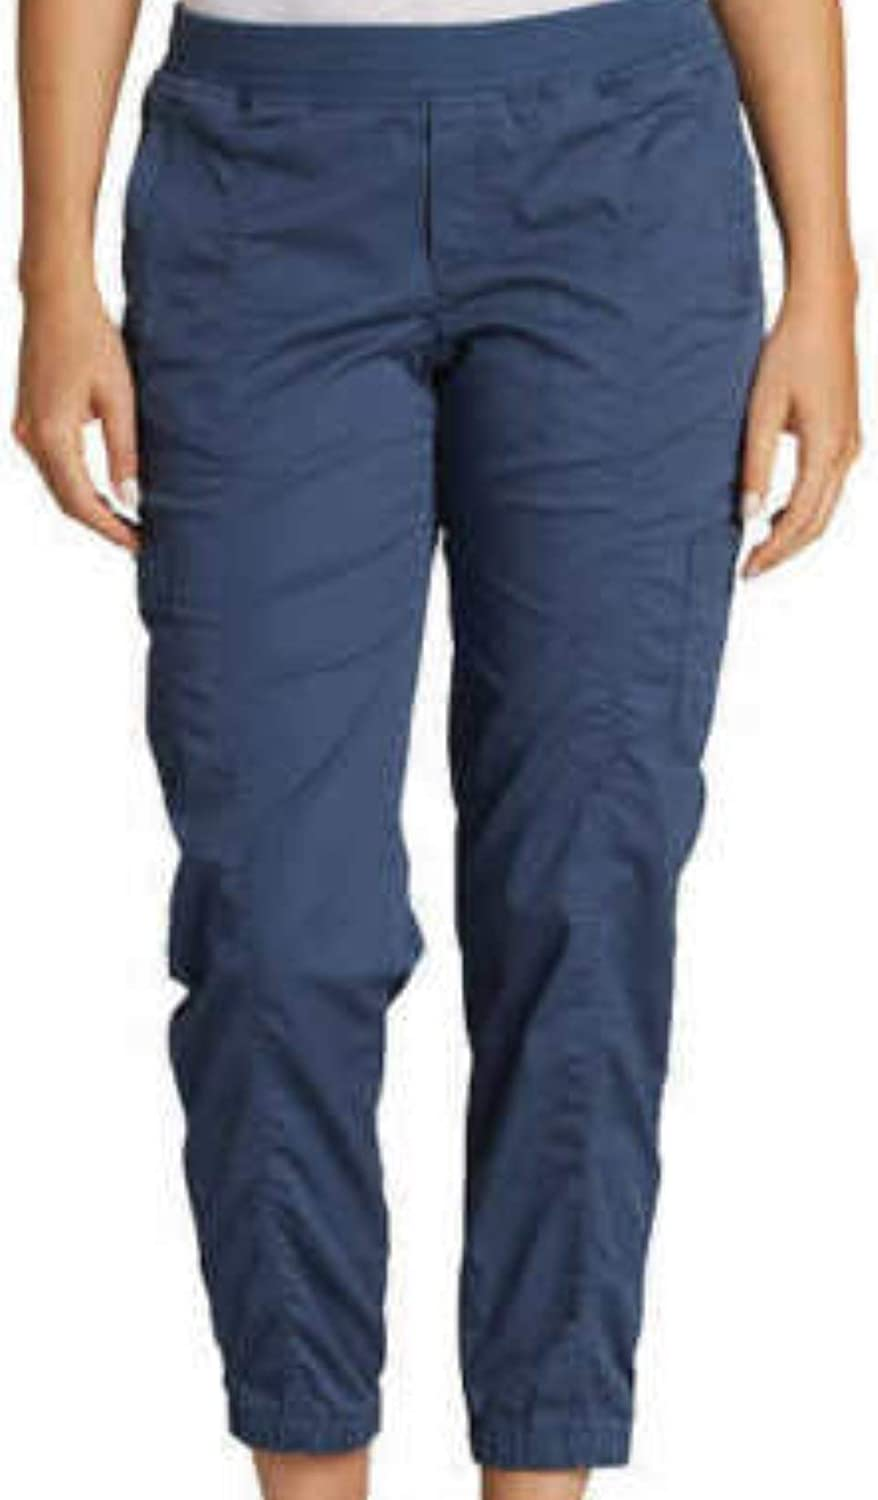 Eddie Bauer Womens Laid Back Twill Excellent Jogger Over item handling Dusty Pants 4 Indigo